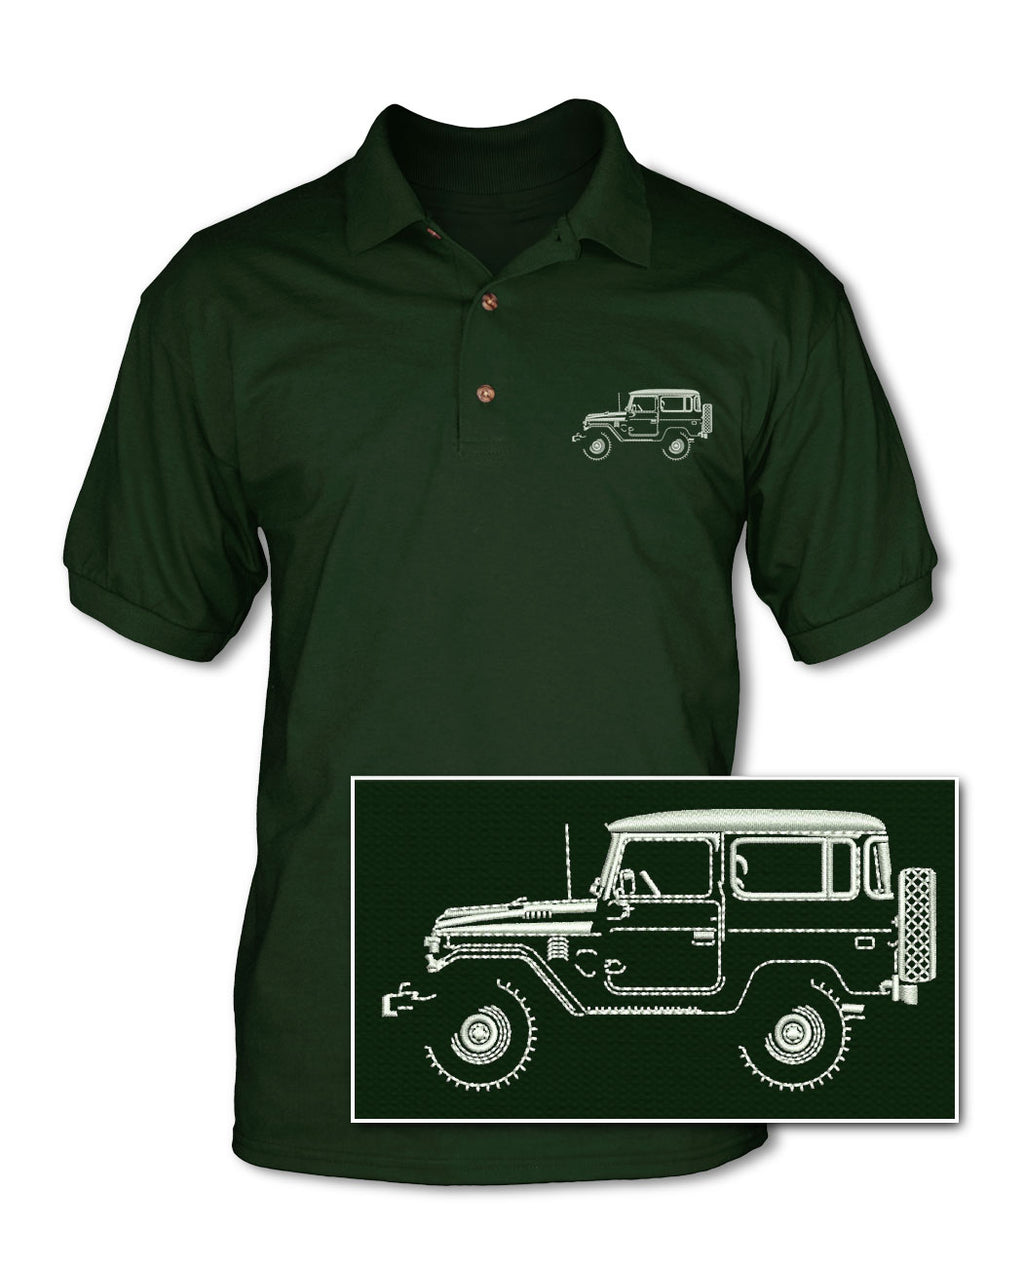 Toyota BJ40 FJ40 Land Cruiser 4x4 Adult Pique Polo Shirt - Side View